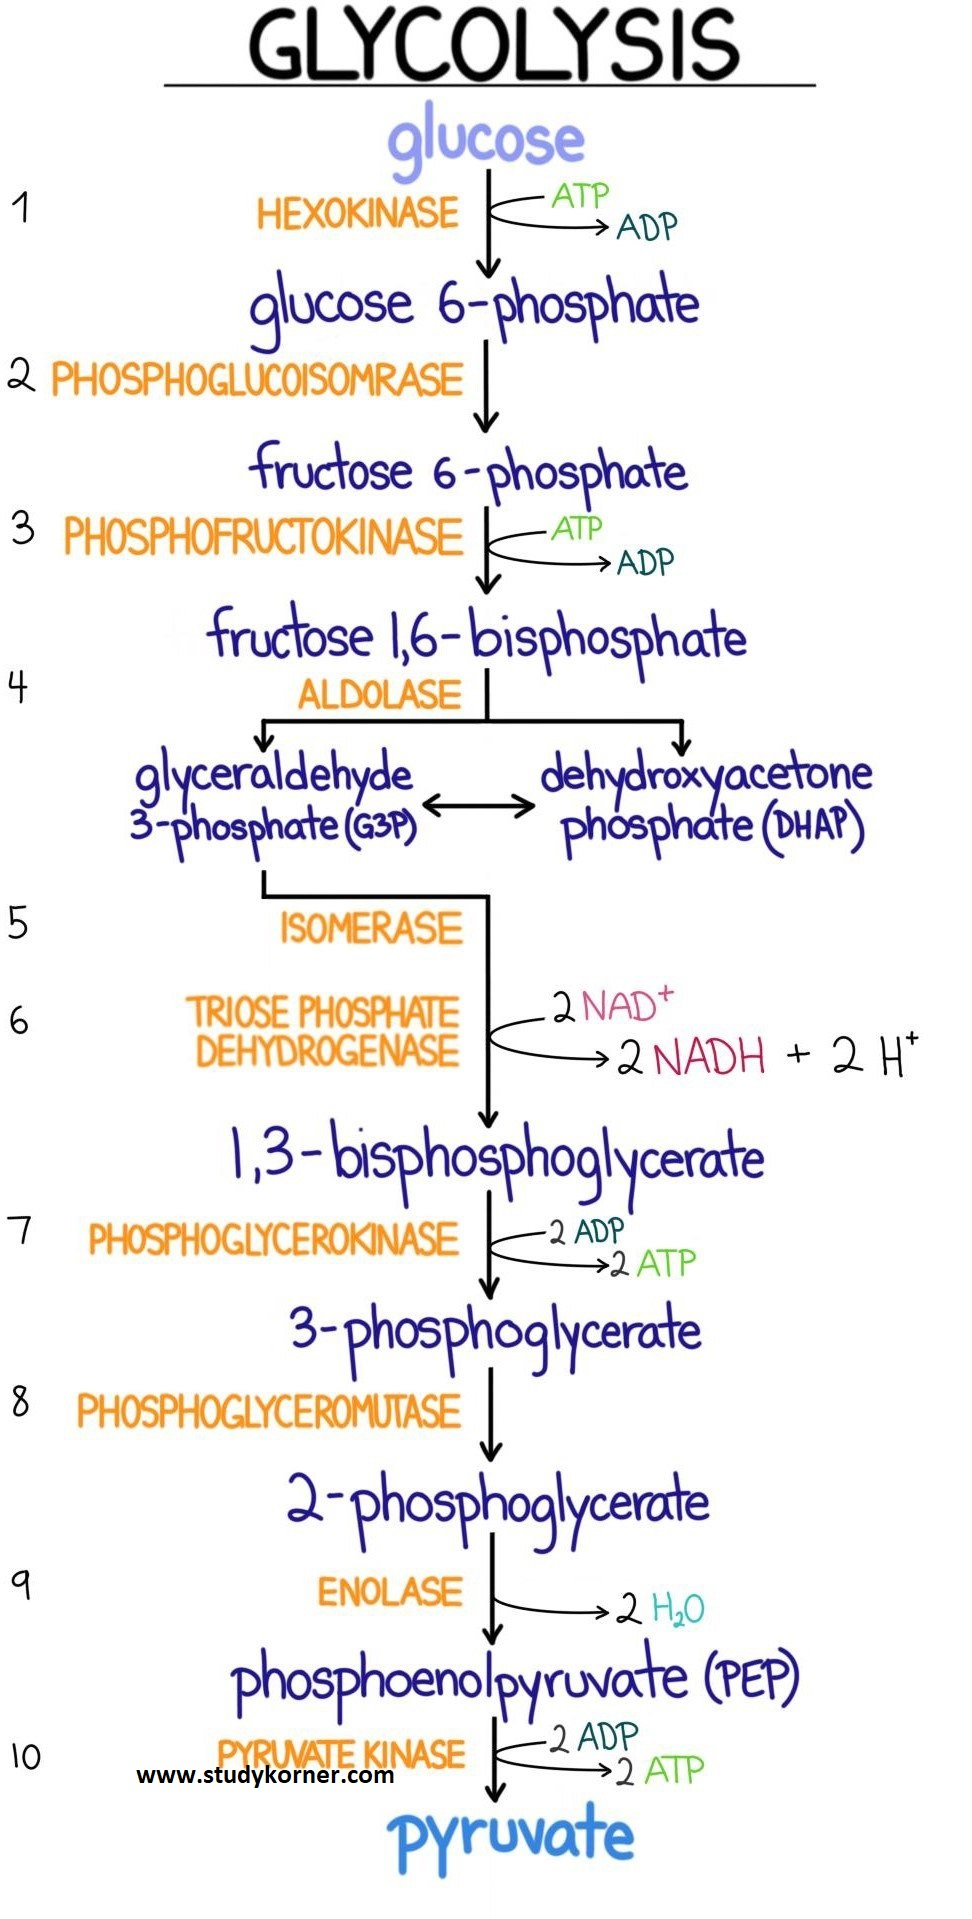 Glycolysis Flow Chart